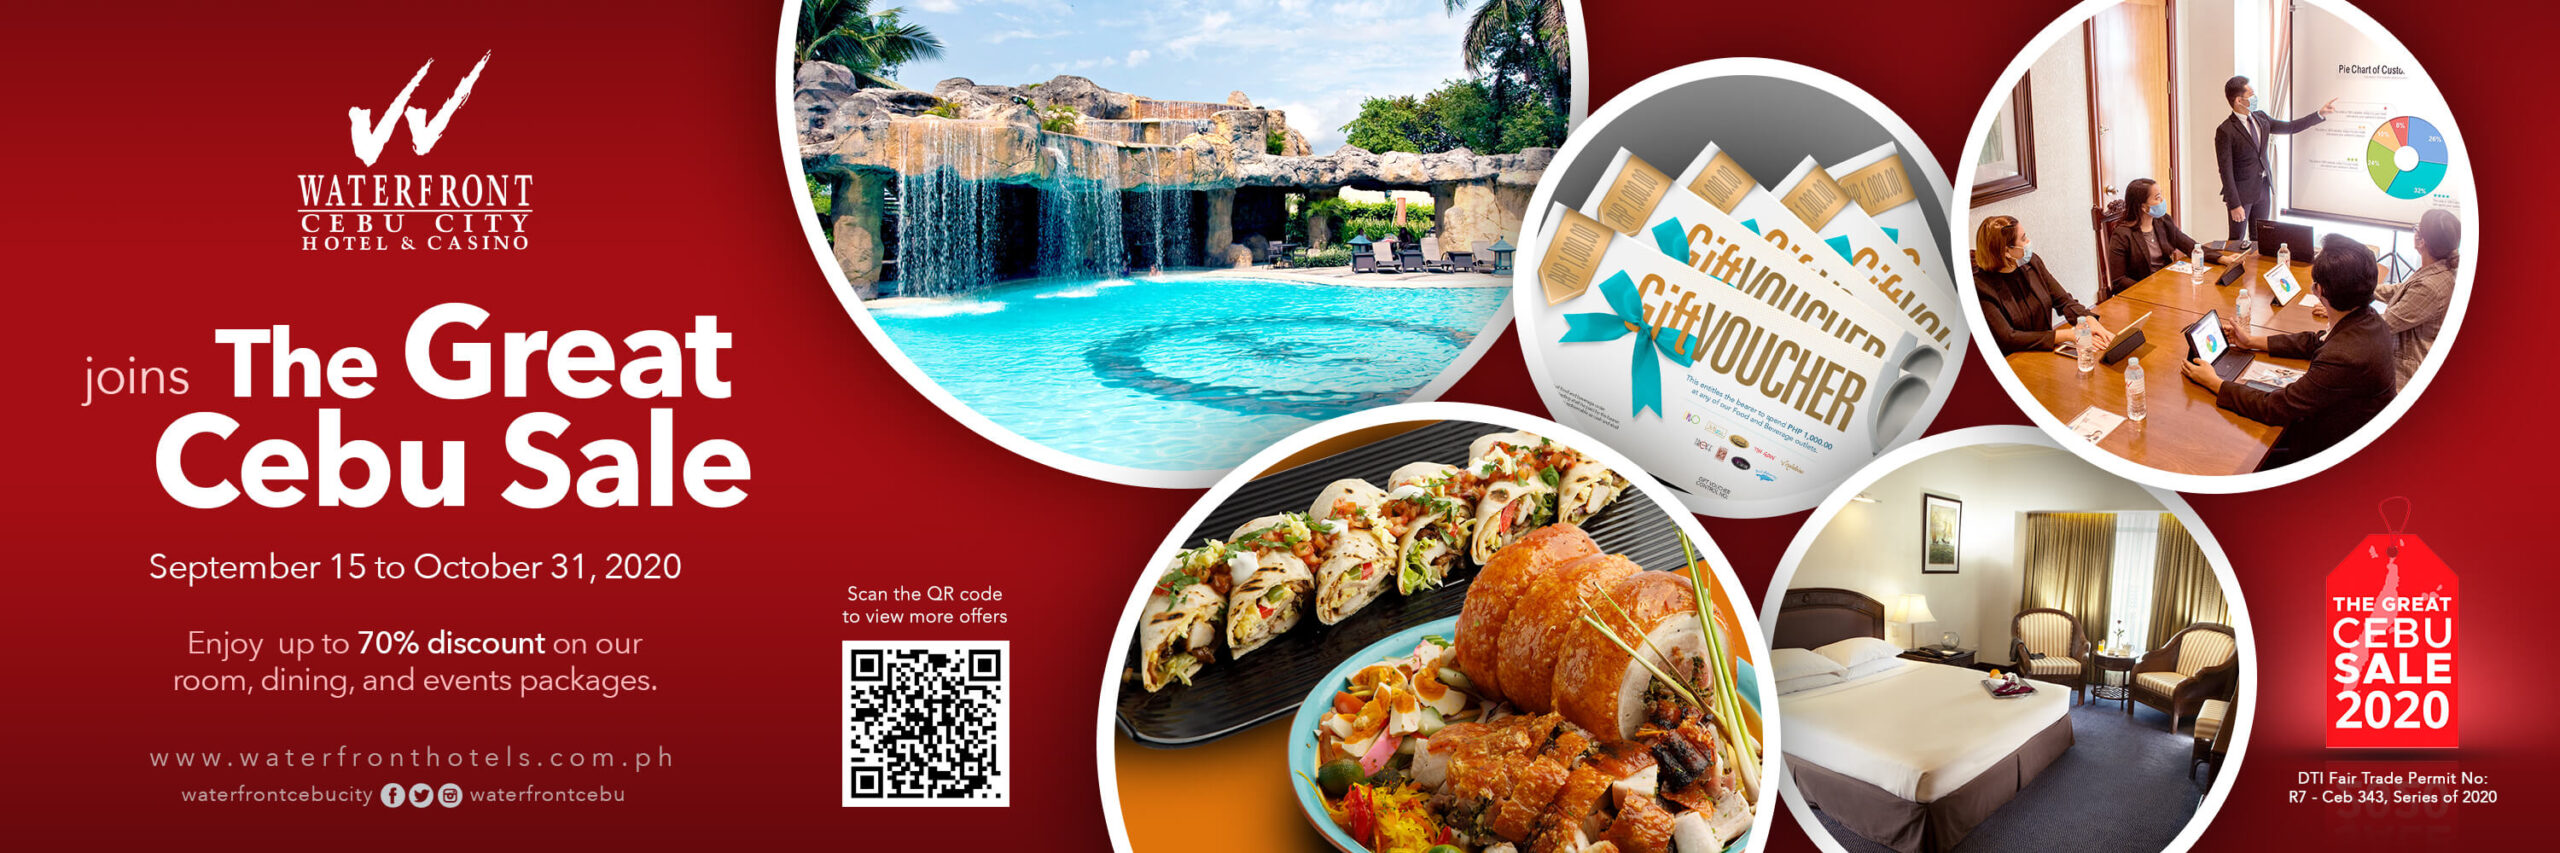 Waterfront Cebu City Hotel & Casino offers up to 70% discount on rooms, dining, events packages